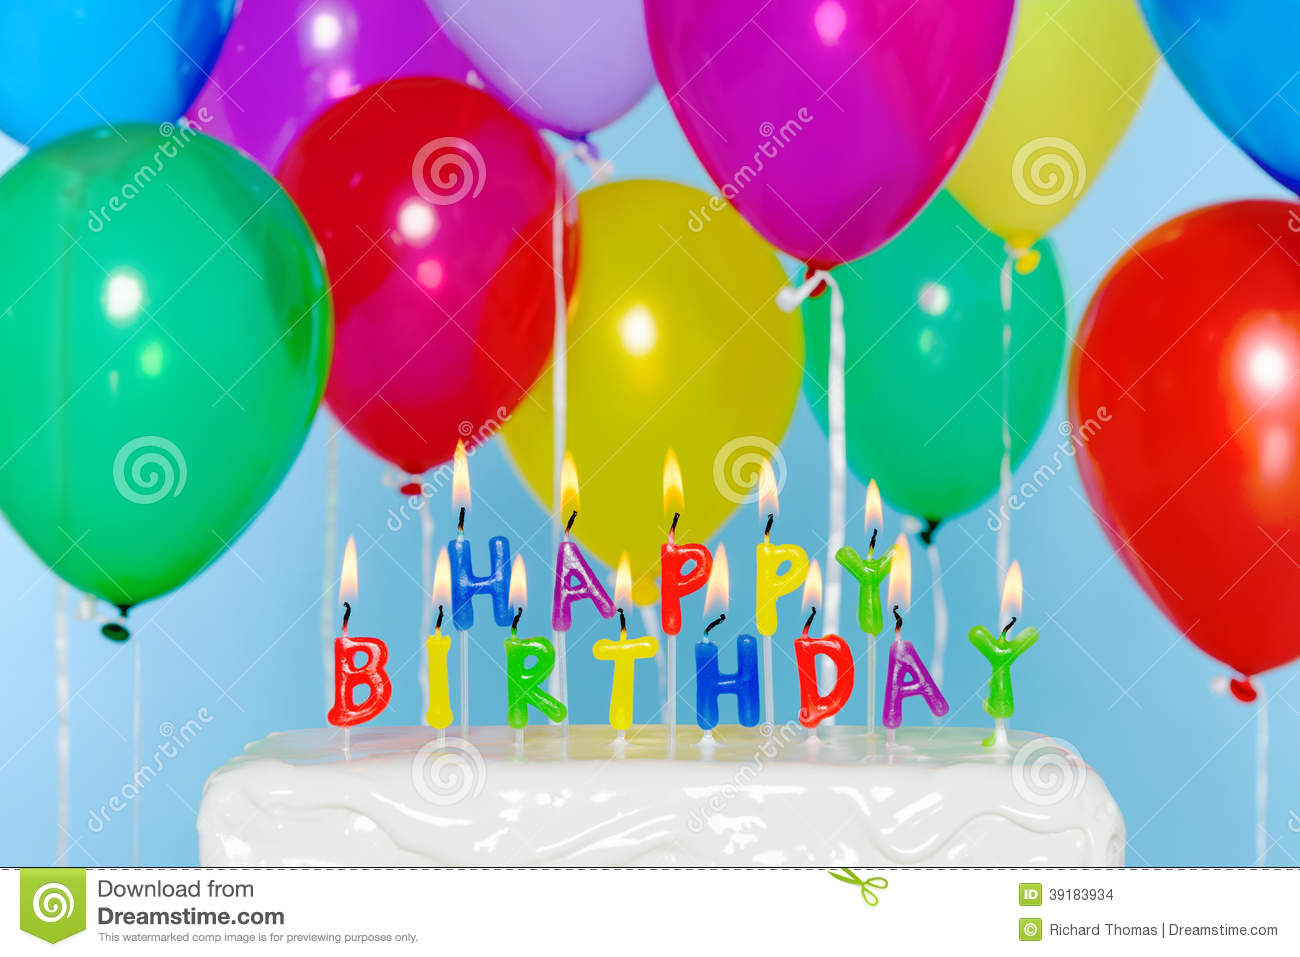 birthday cake balloons picture ; happy-birthday-candles-cake-balloons-candle-letters-colourful-background-39183934